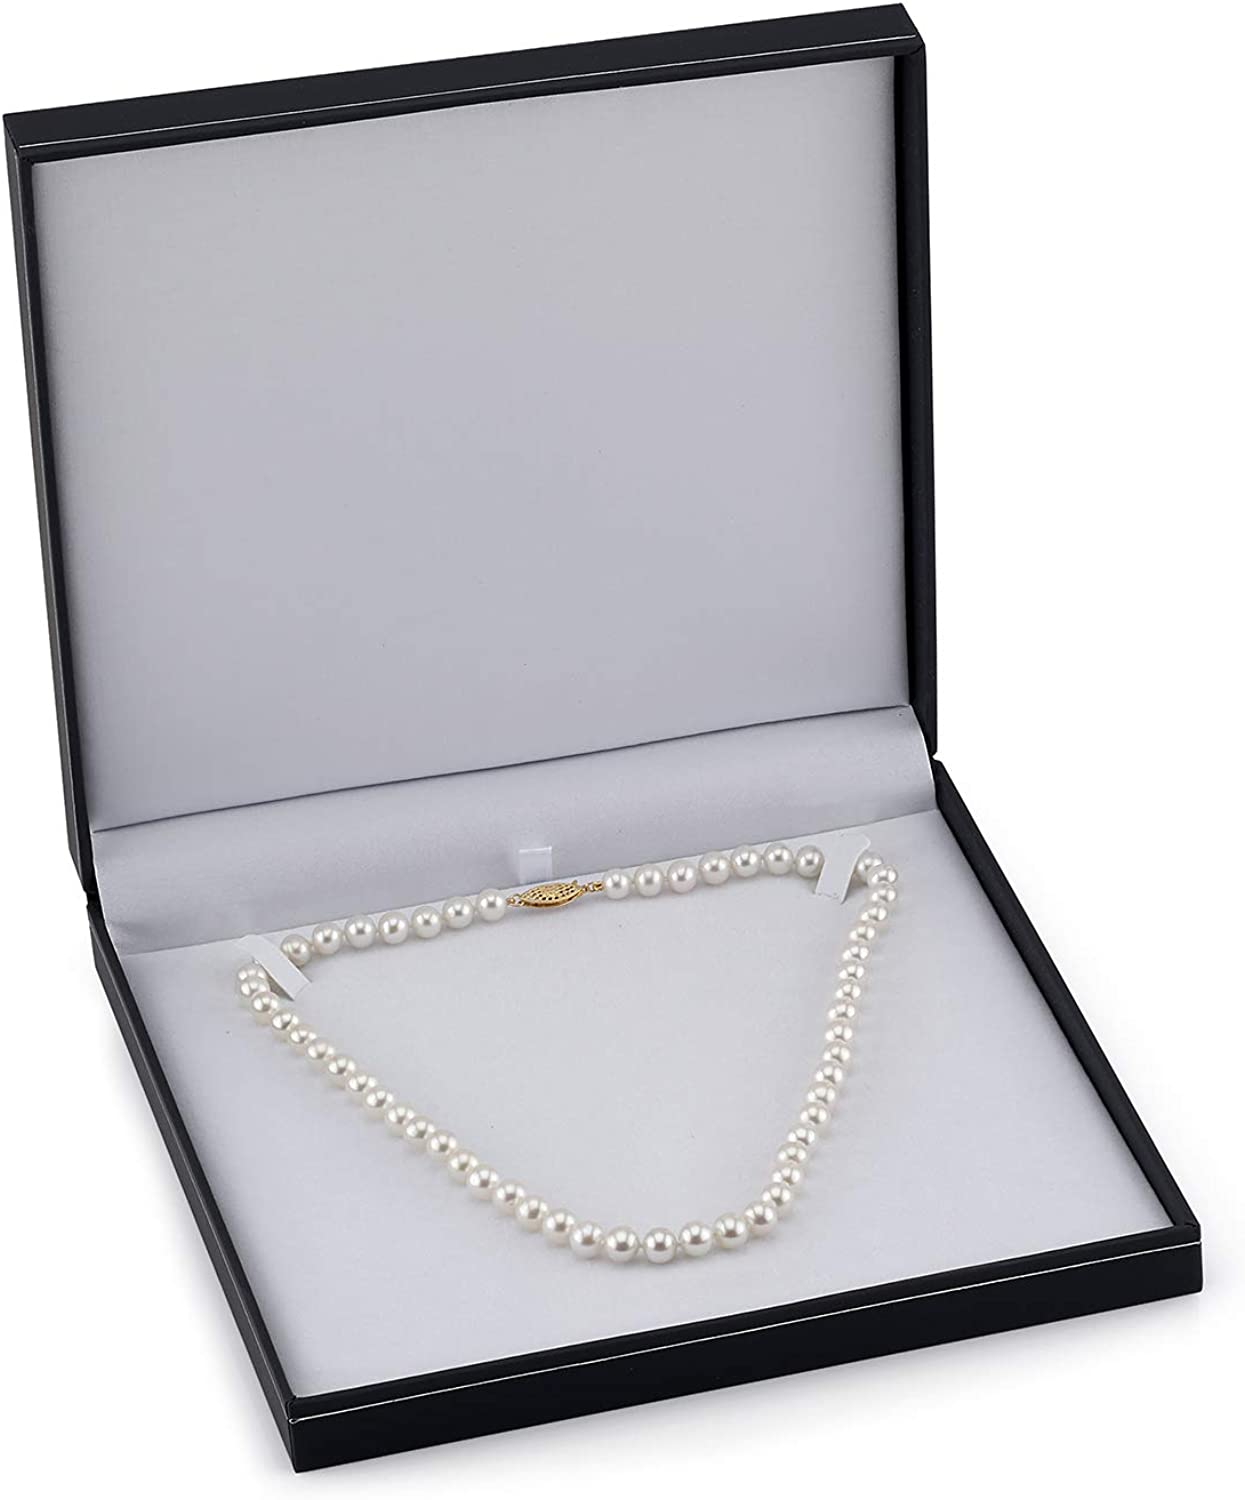 THE PEARL SOURCE 14K Gold 5.0-5.5mm AAAA Quality Round White Freshwater Cultured Pearl Necklace for Women 18 Princess Length